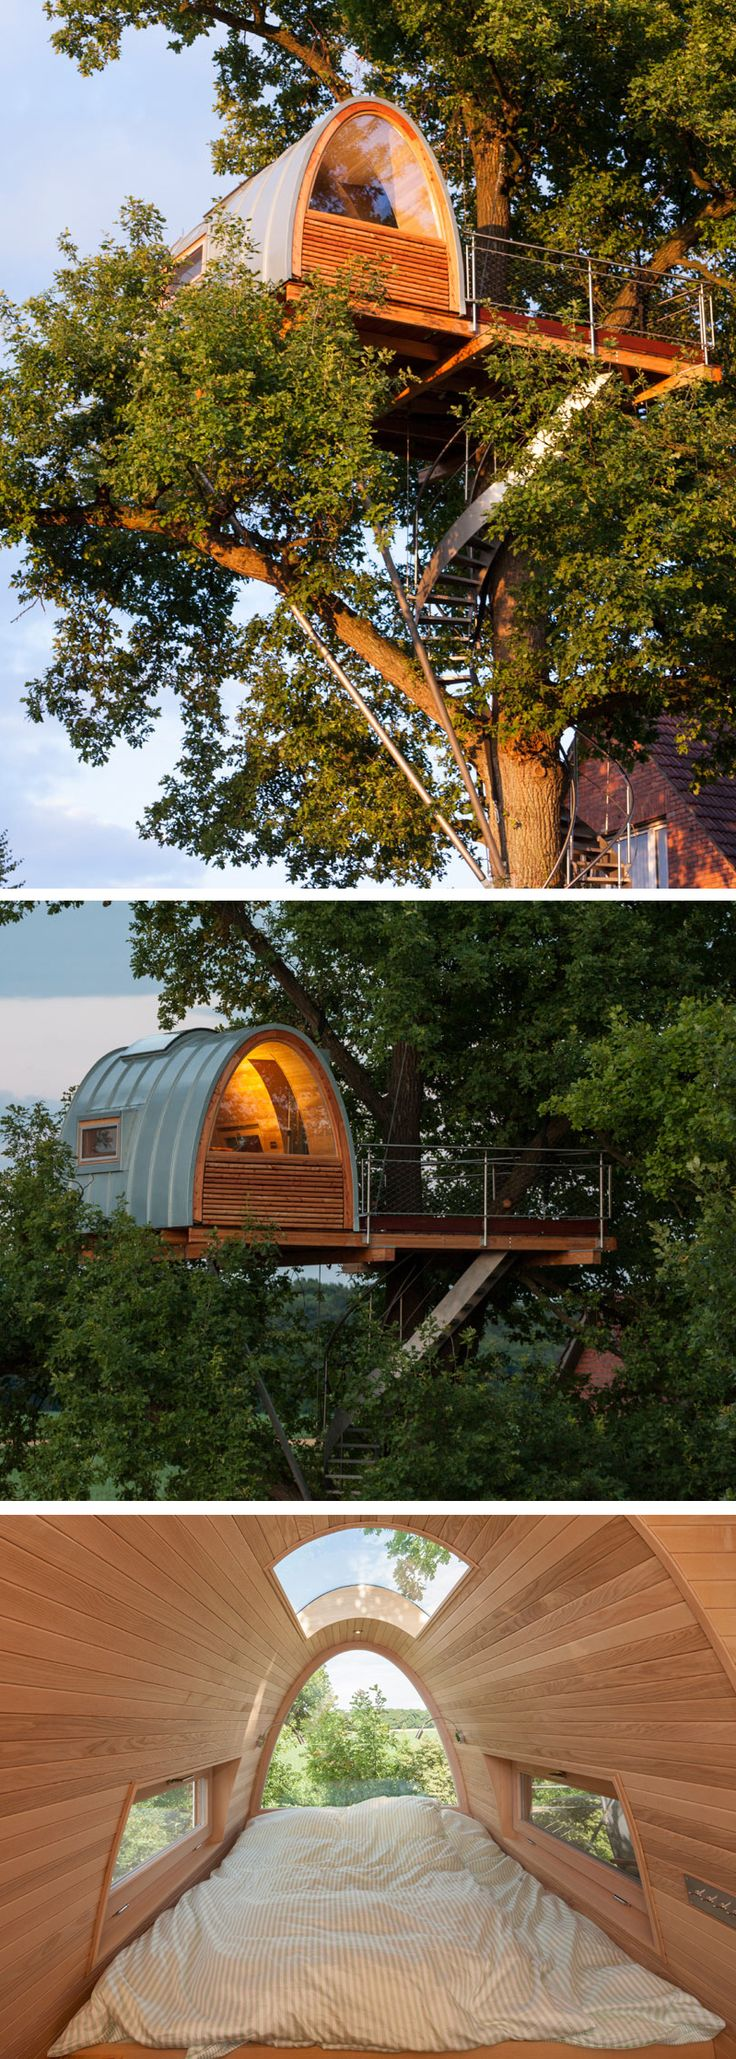 A modern treehouse in Germany is situated 11 meters off the ground and offers a cosy retreat to sleep and relax in when the homeowners want to get away. Made by http://www.baumraum.de                                                                                                                                                     Mehr